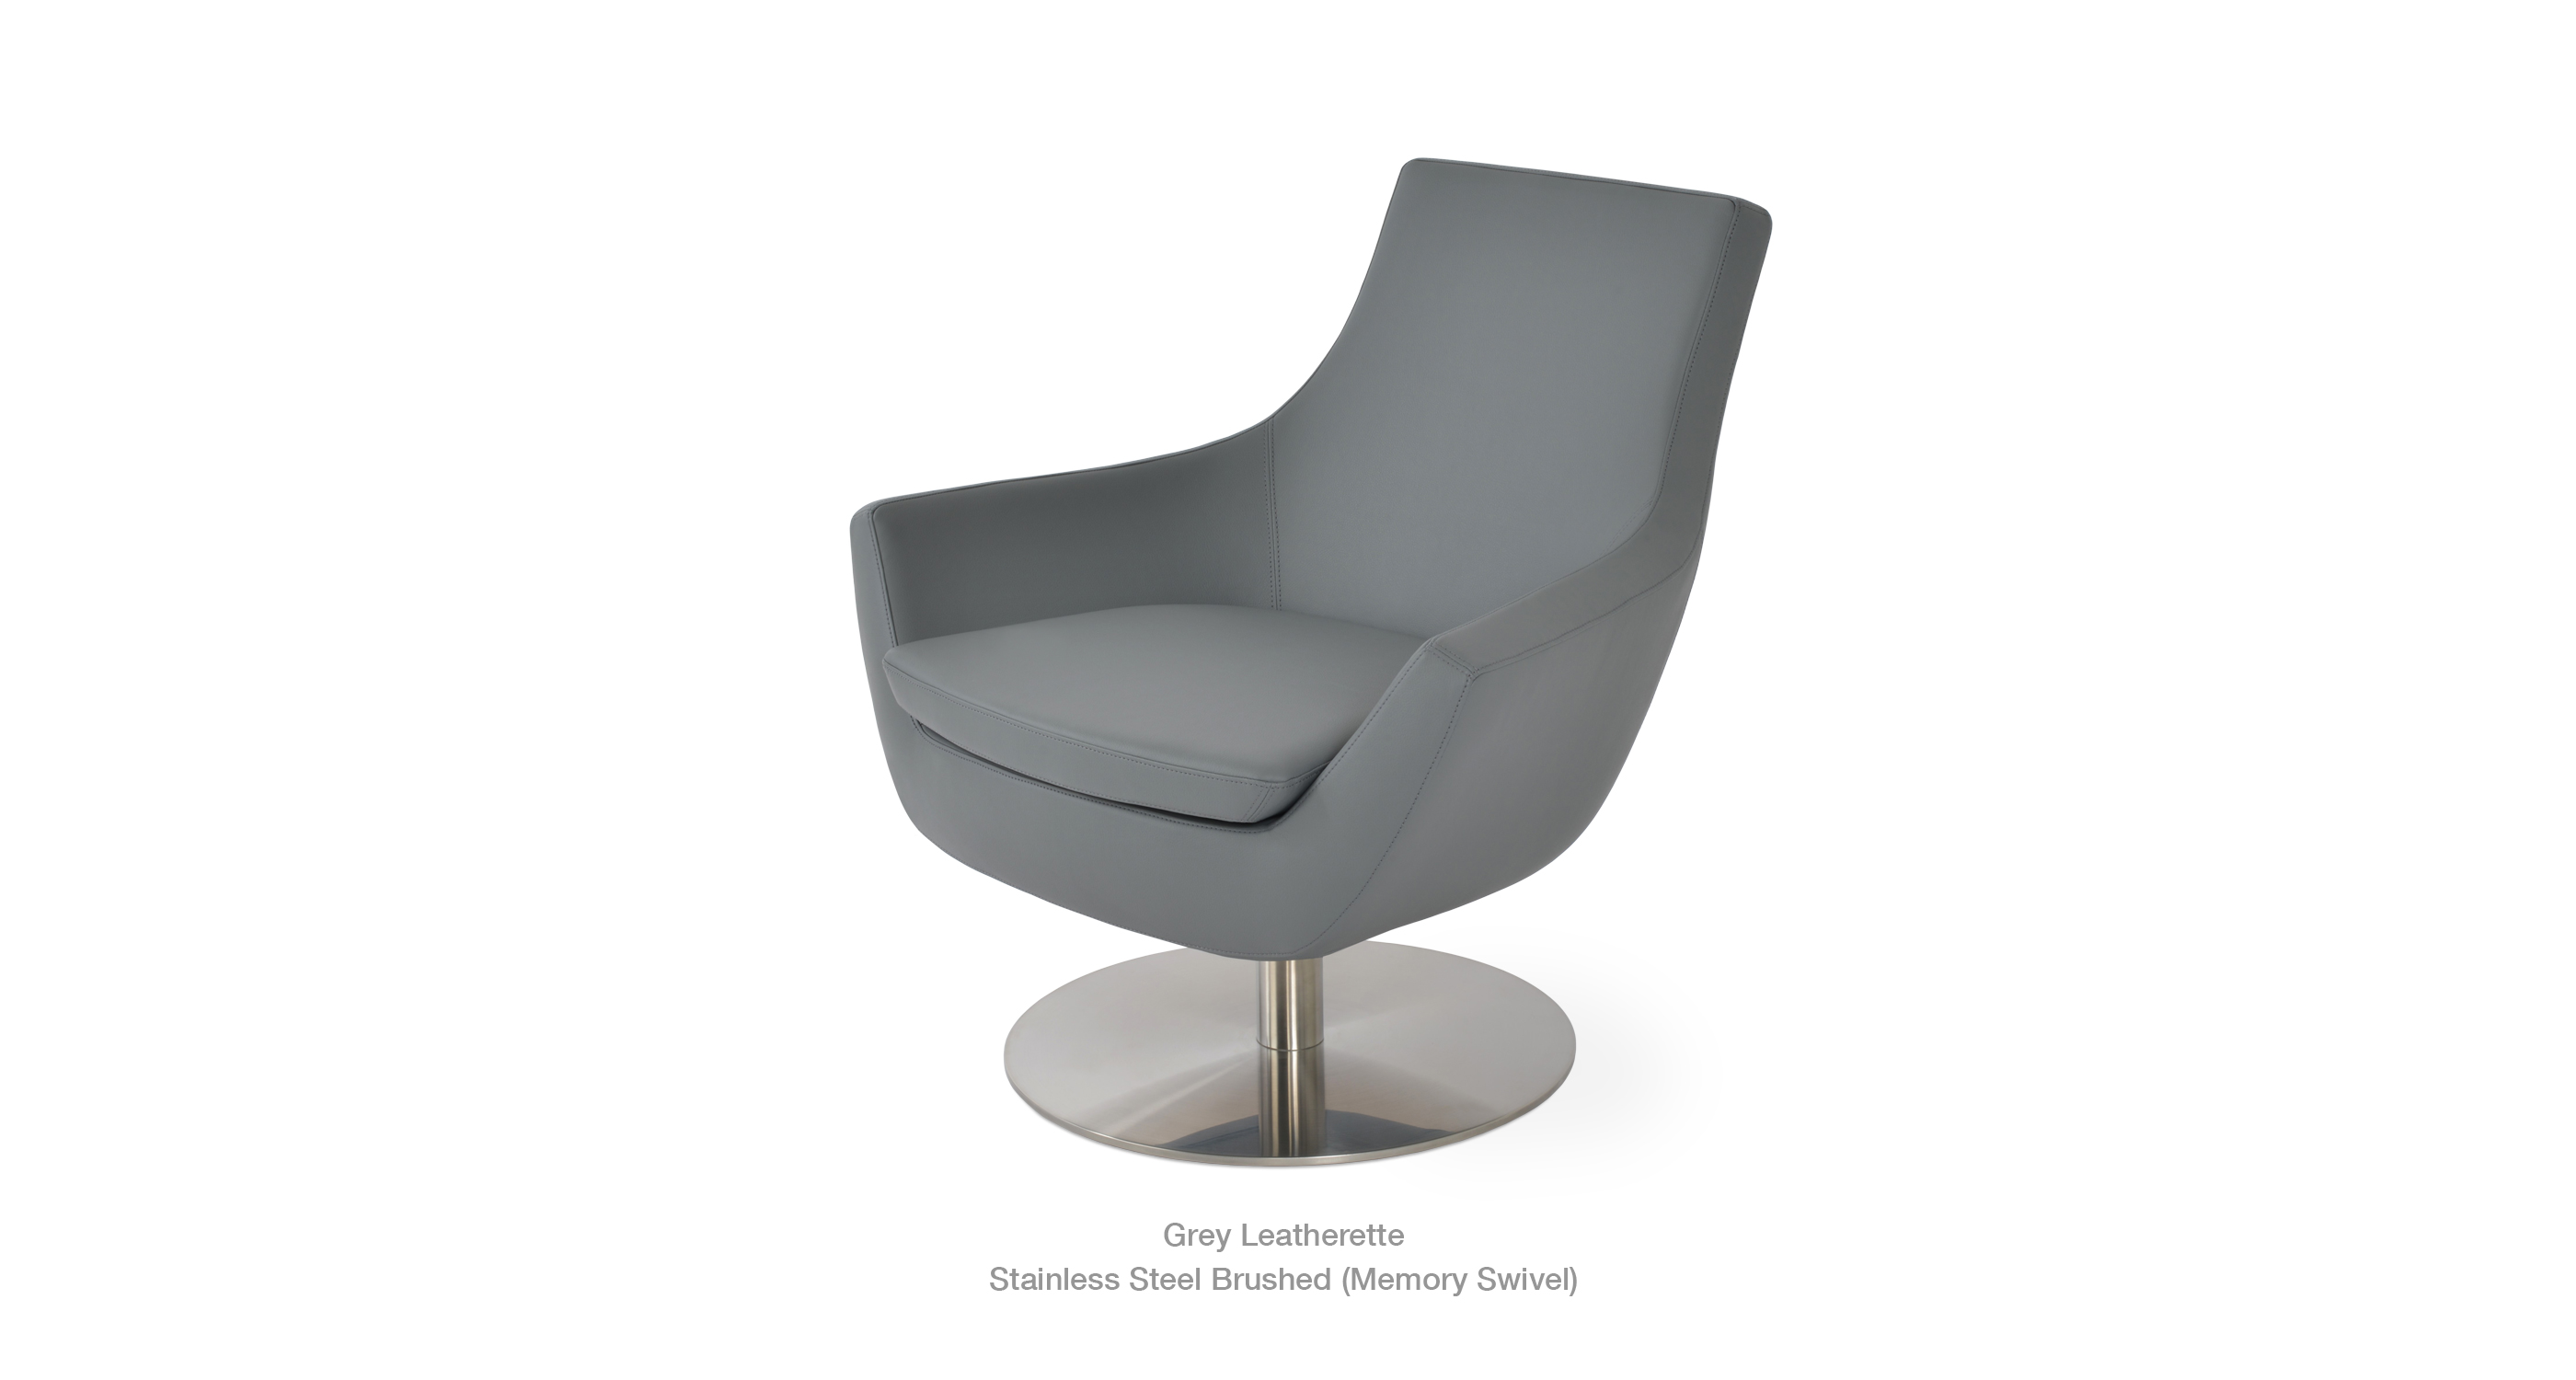 grey leatherette